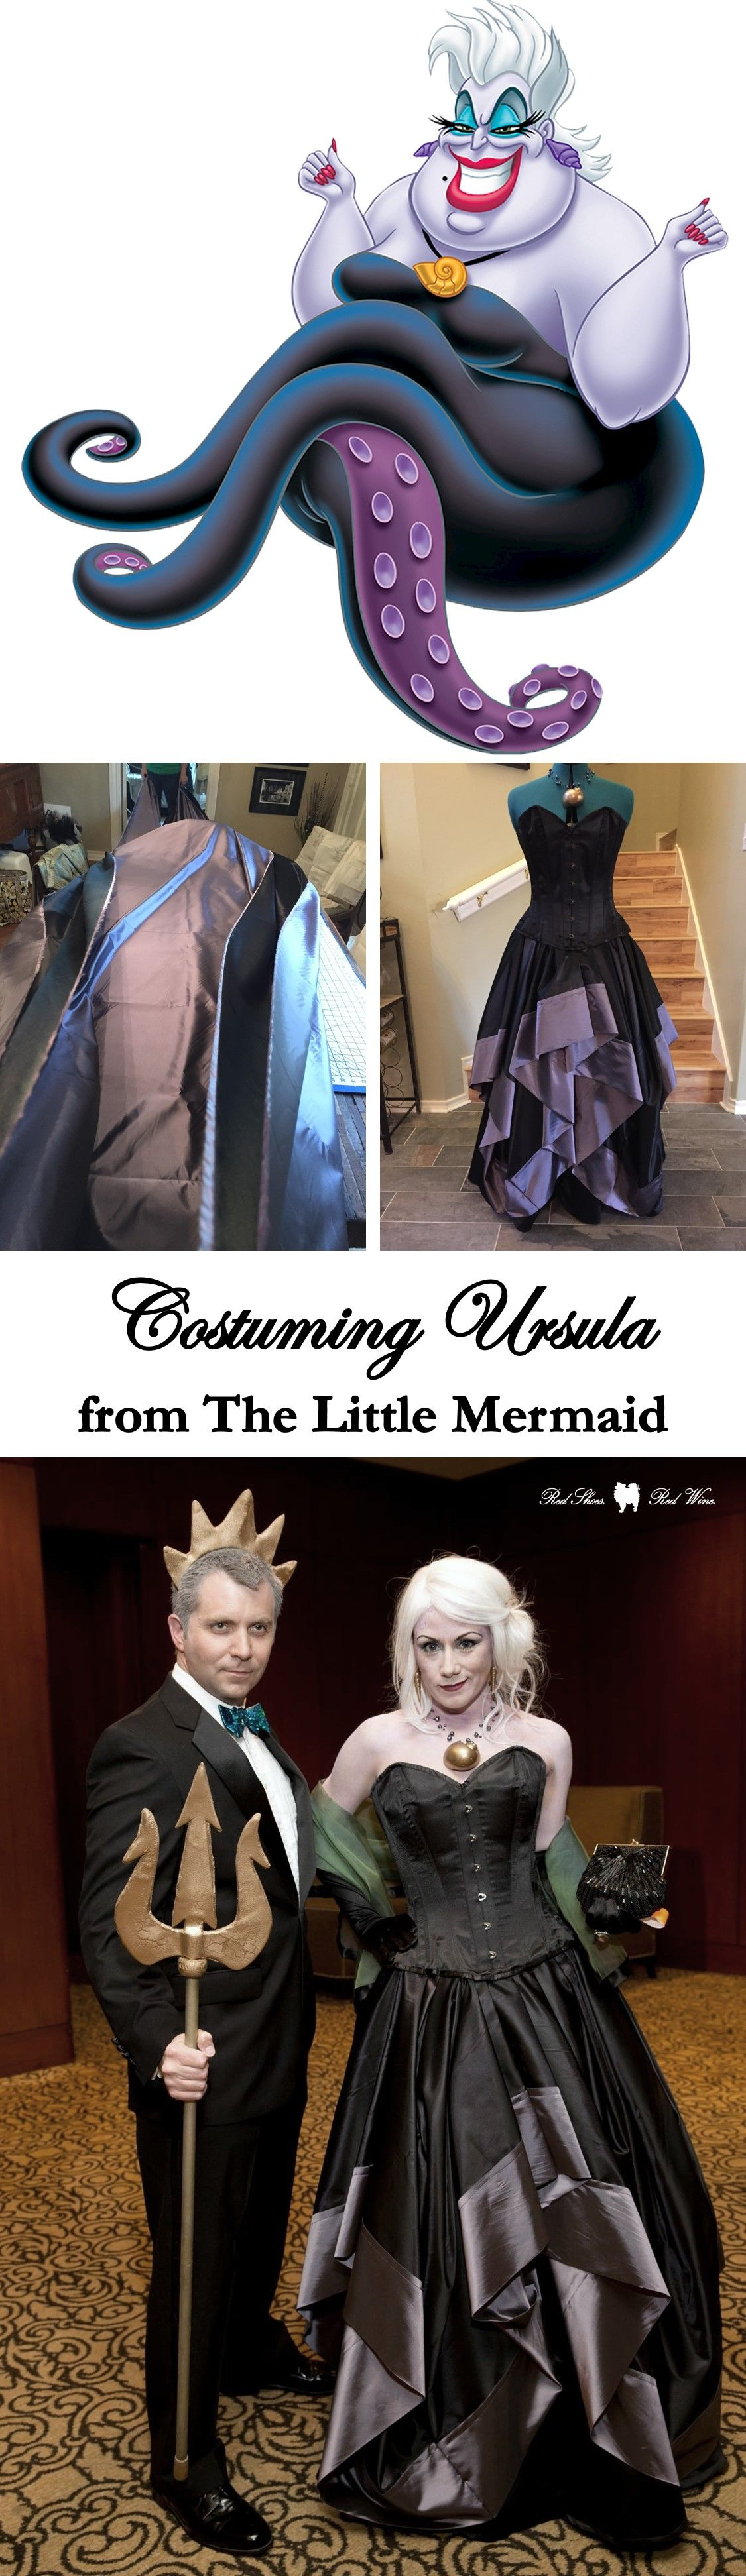 Costuming ursula concept from the little mermaid pinterest costuming ursula from disneys the little mermaid cosplay costume halloween diy solutioingenieria Images